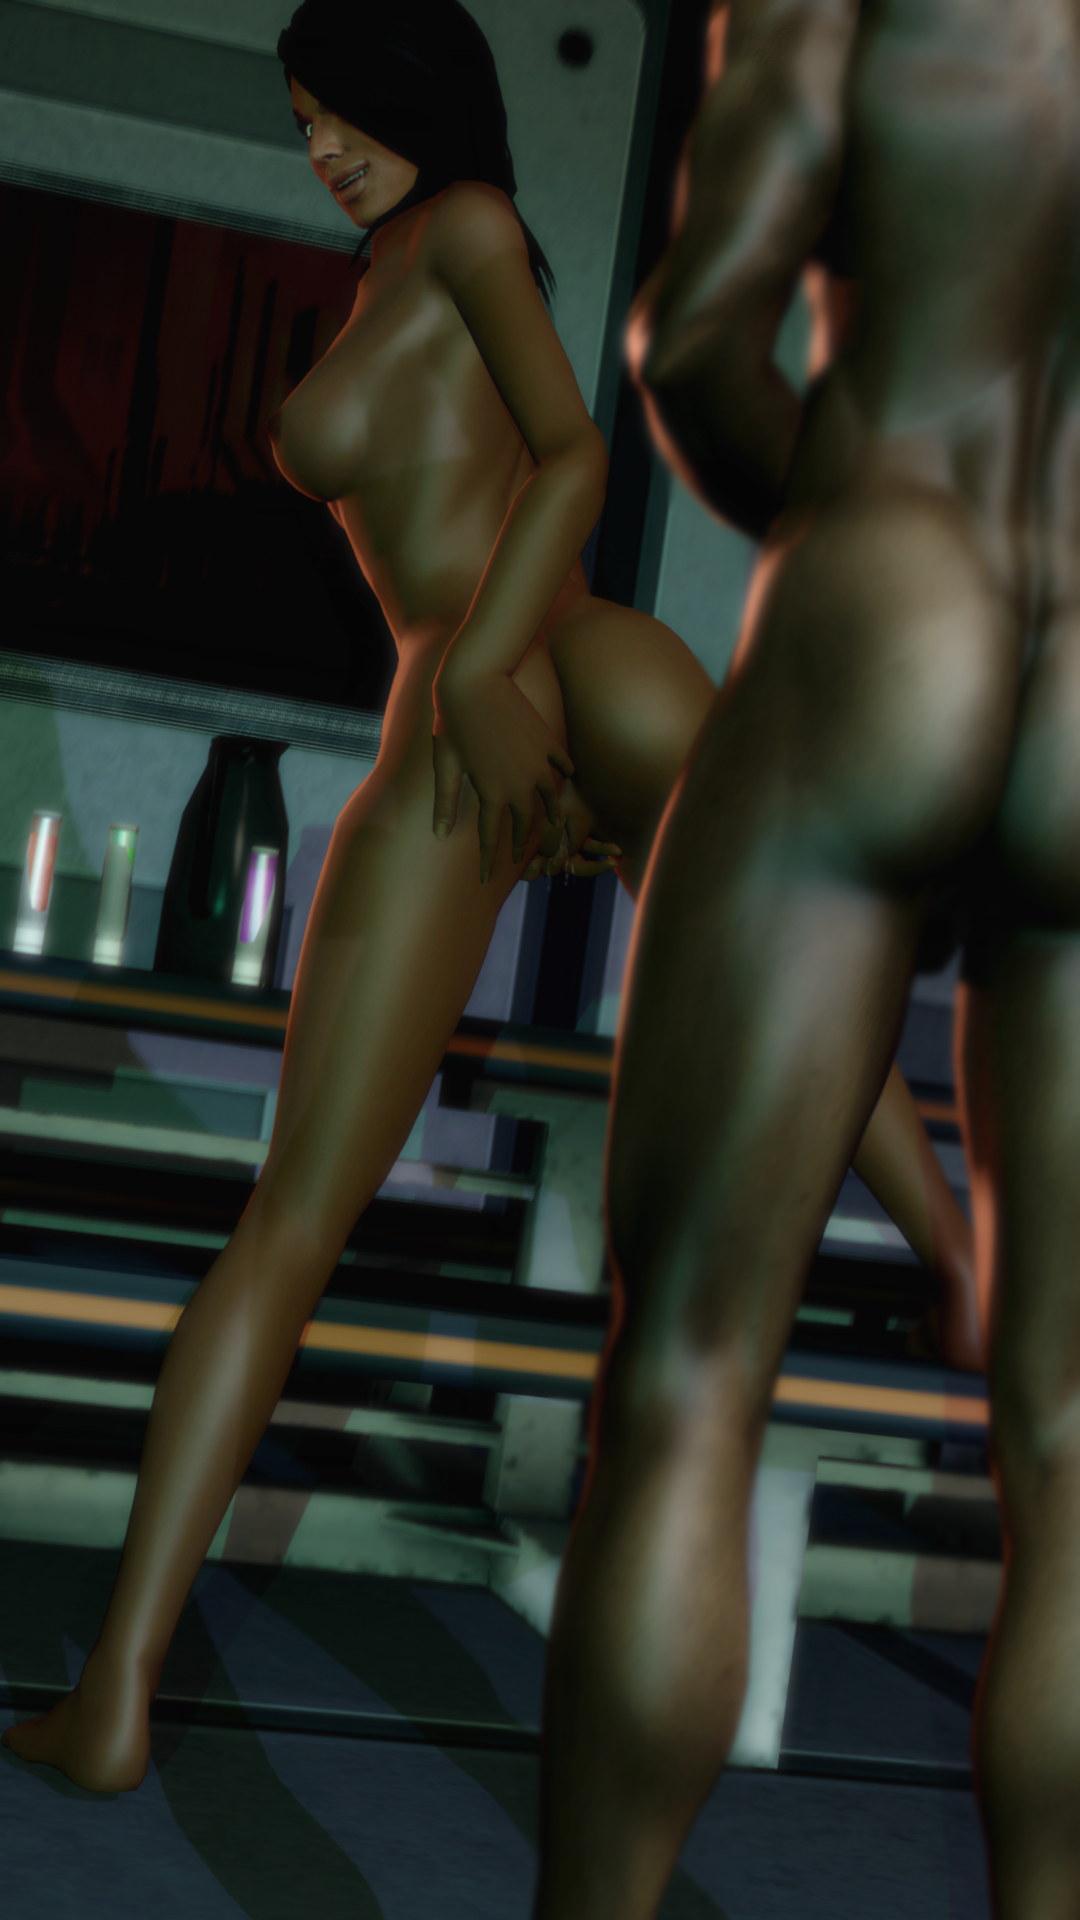 Mass effect ashley nude mod exposed galleries